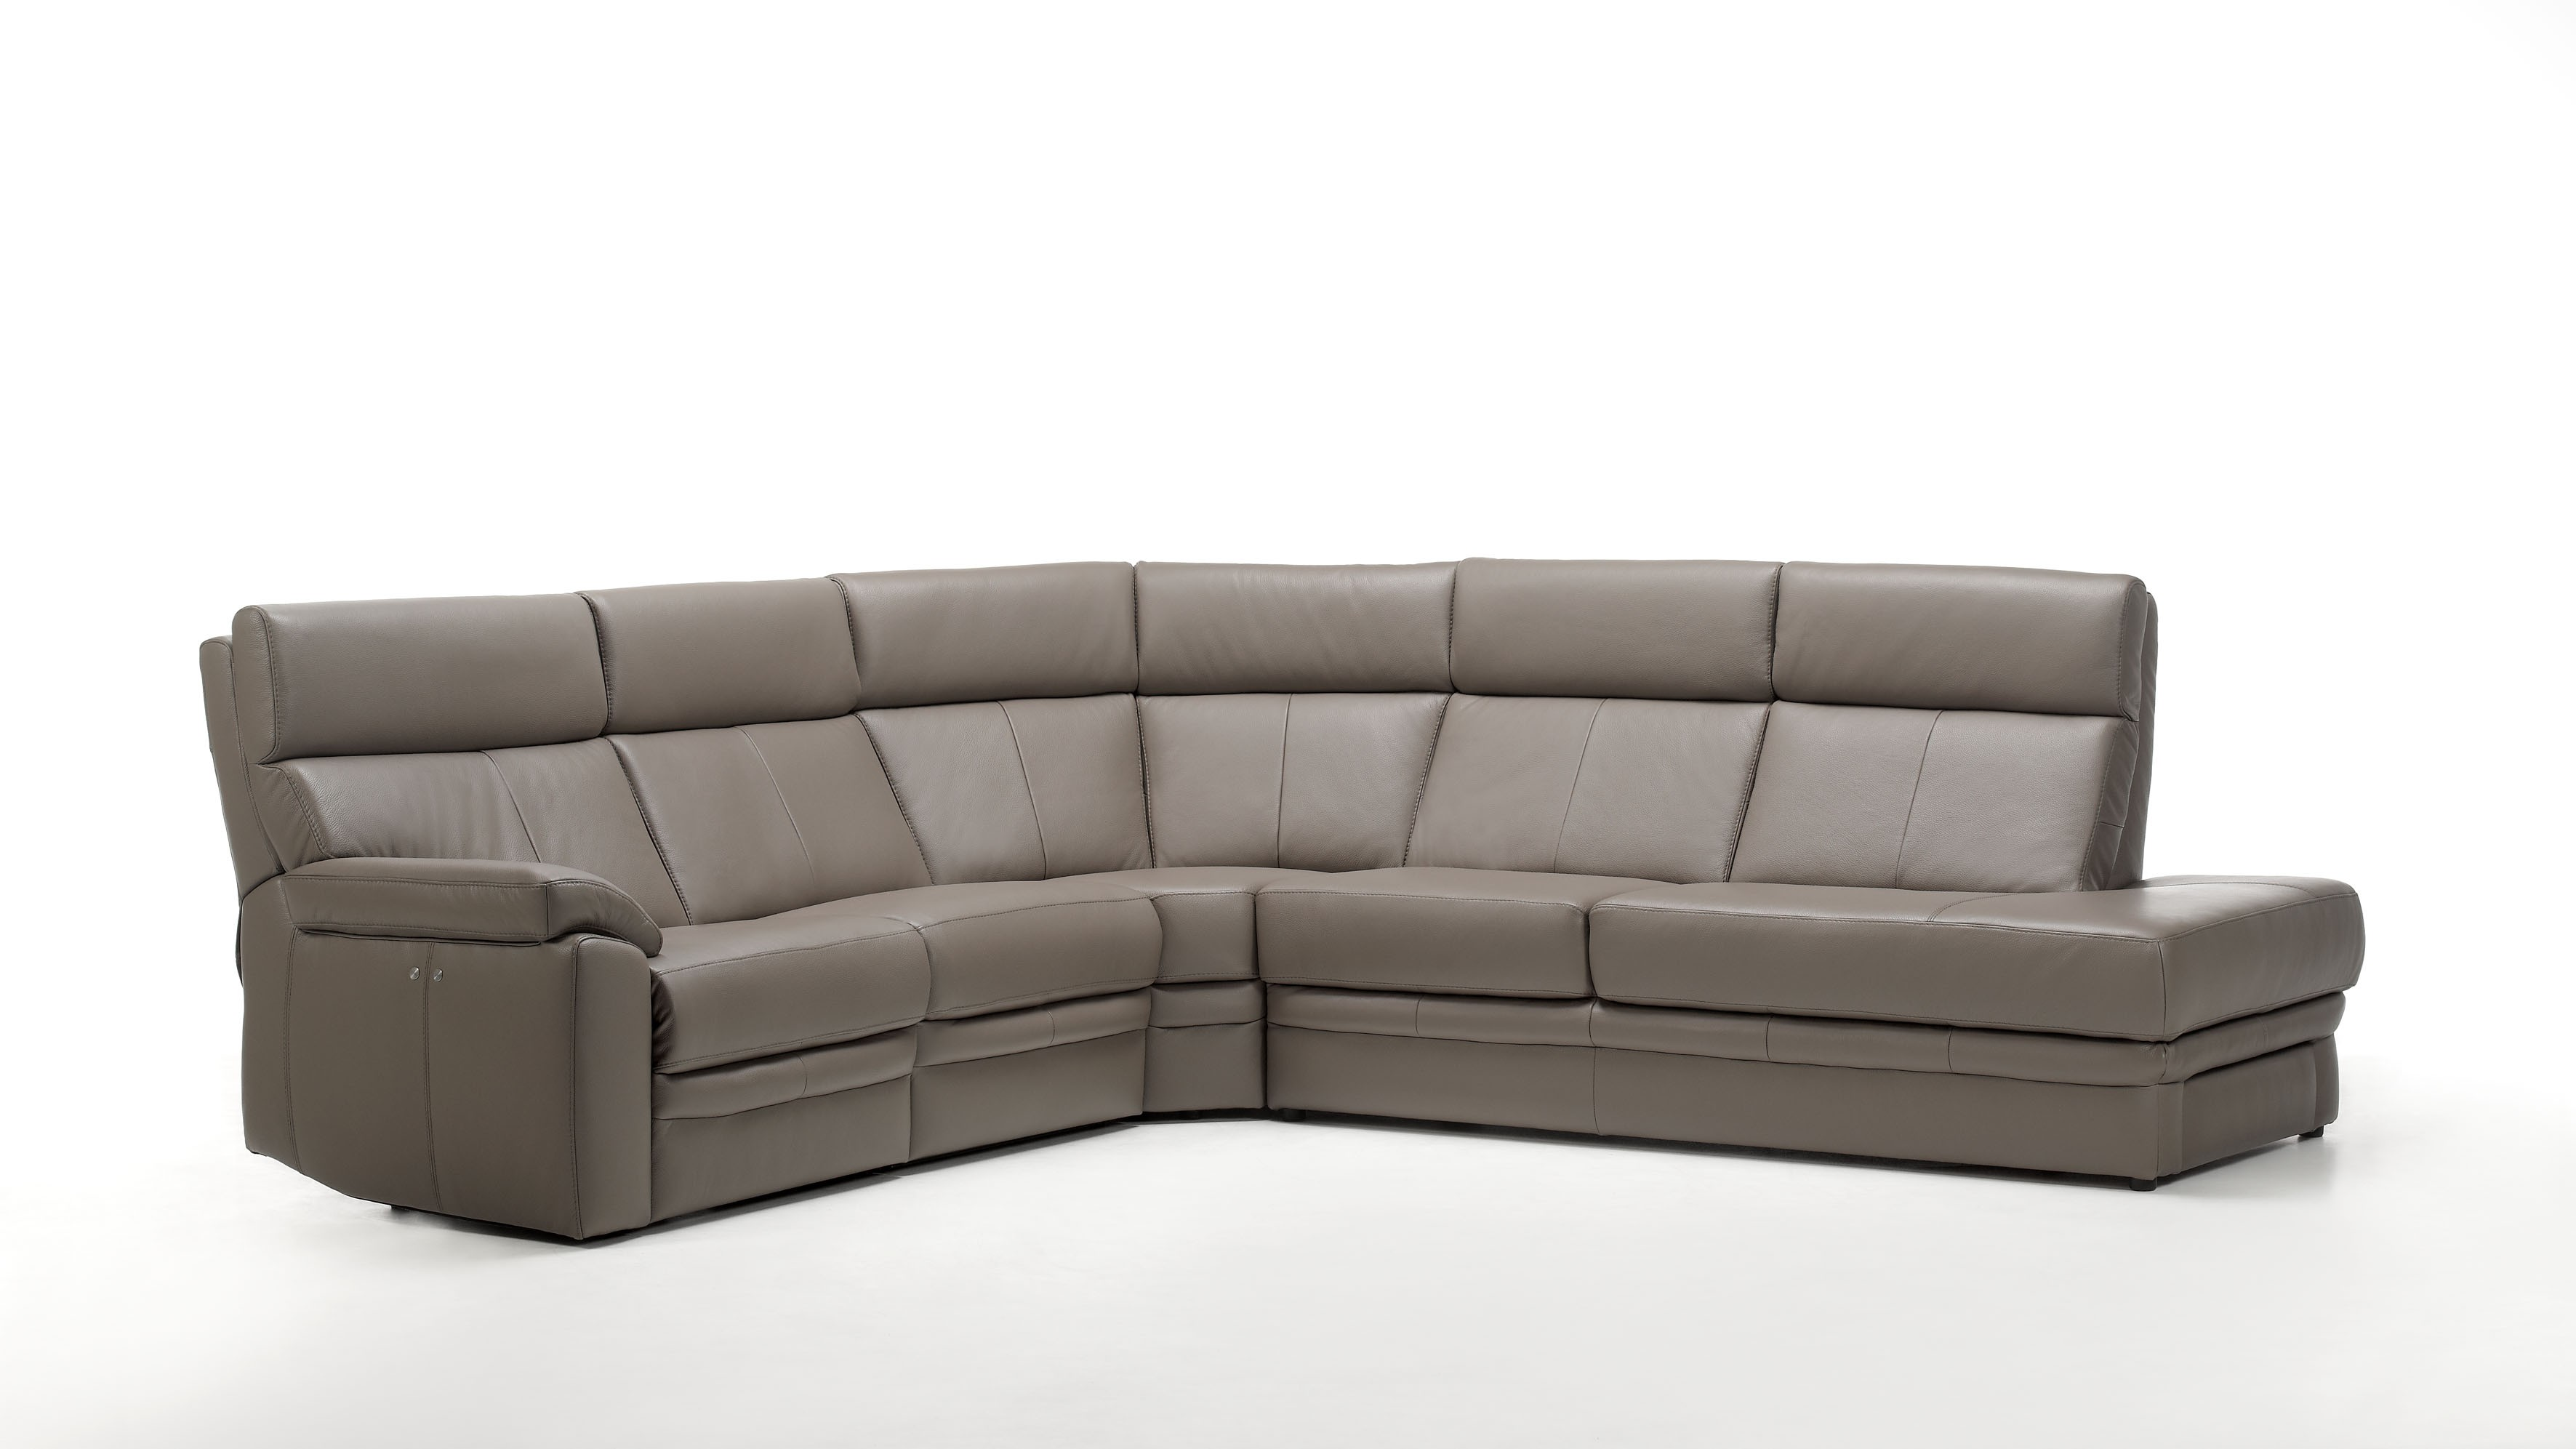 Salvo I Leather Sectional | Rom | Made in Belgium